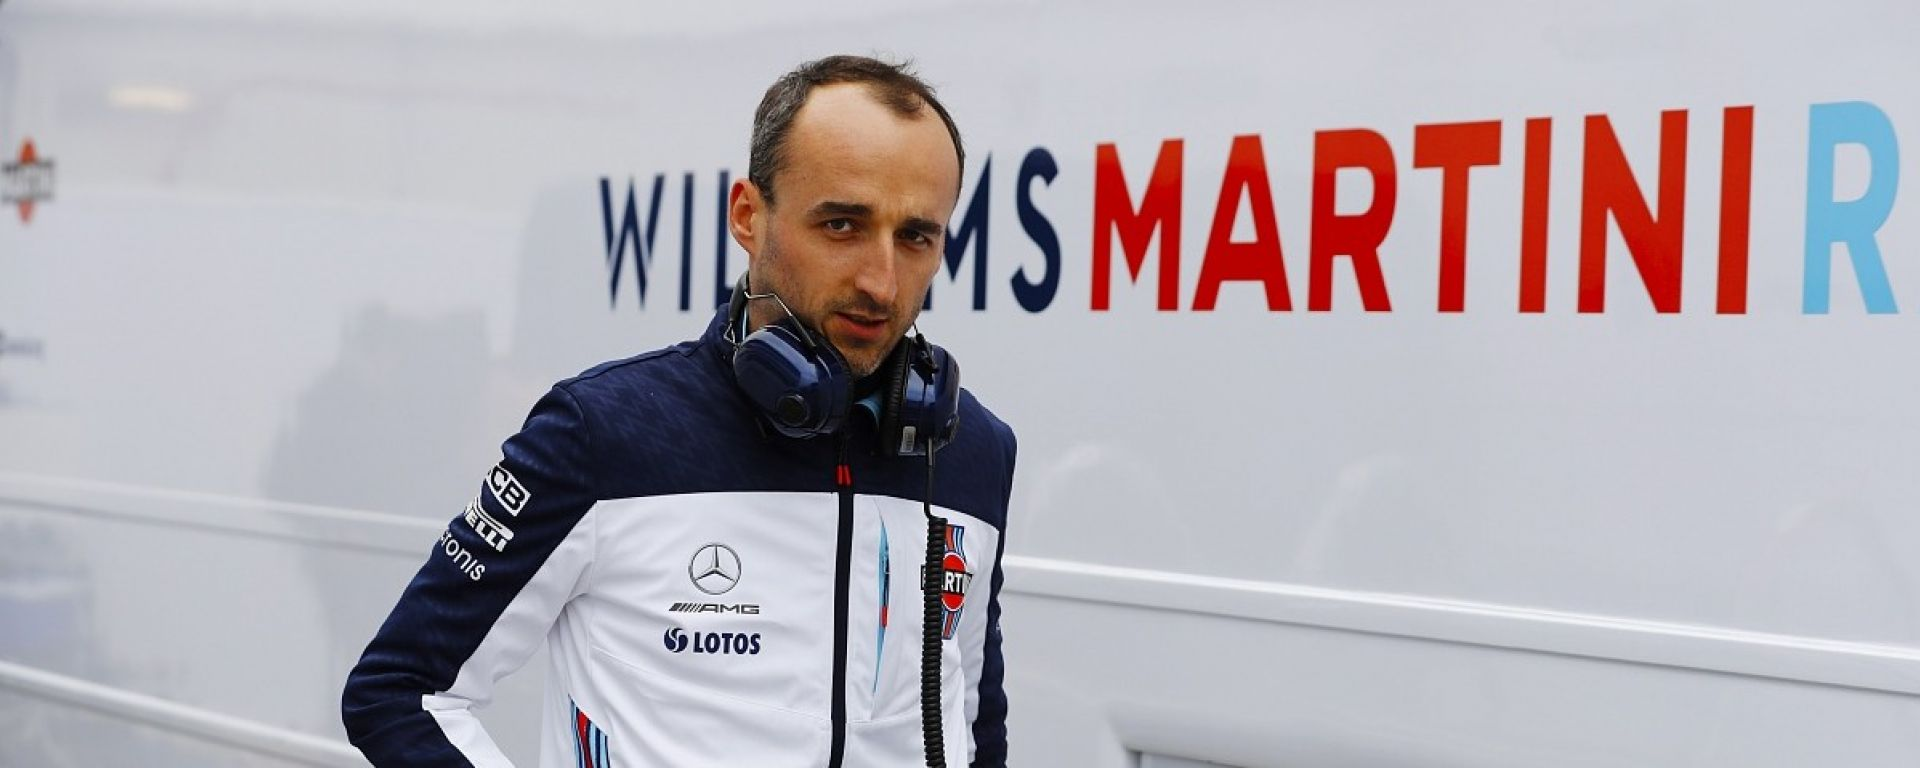 Robert Kubica: il futuro è tra Williams e Ferrari